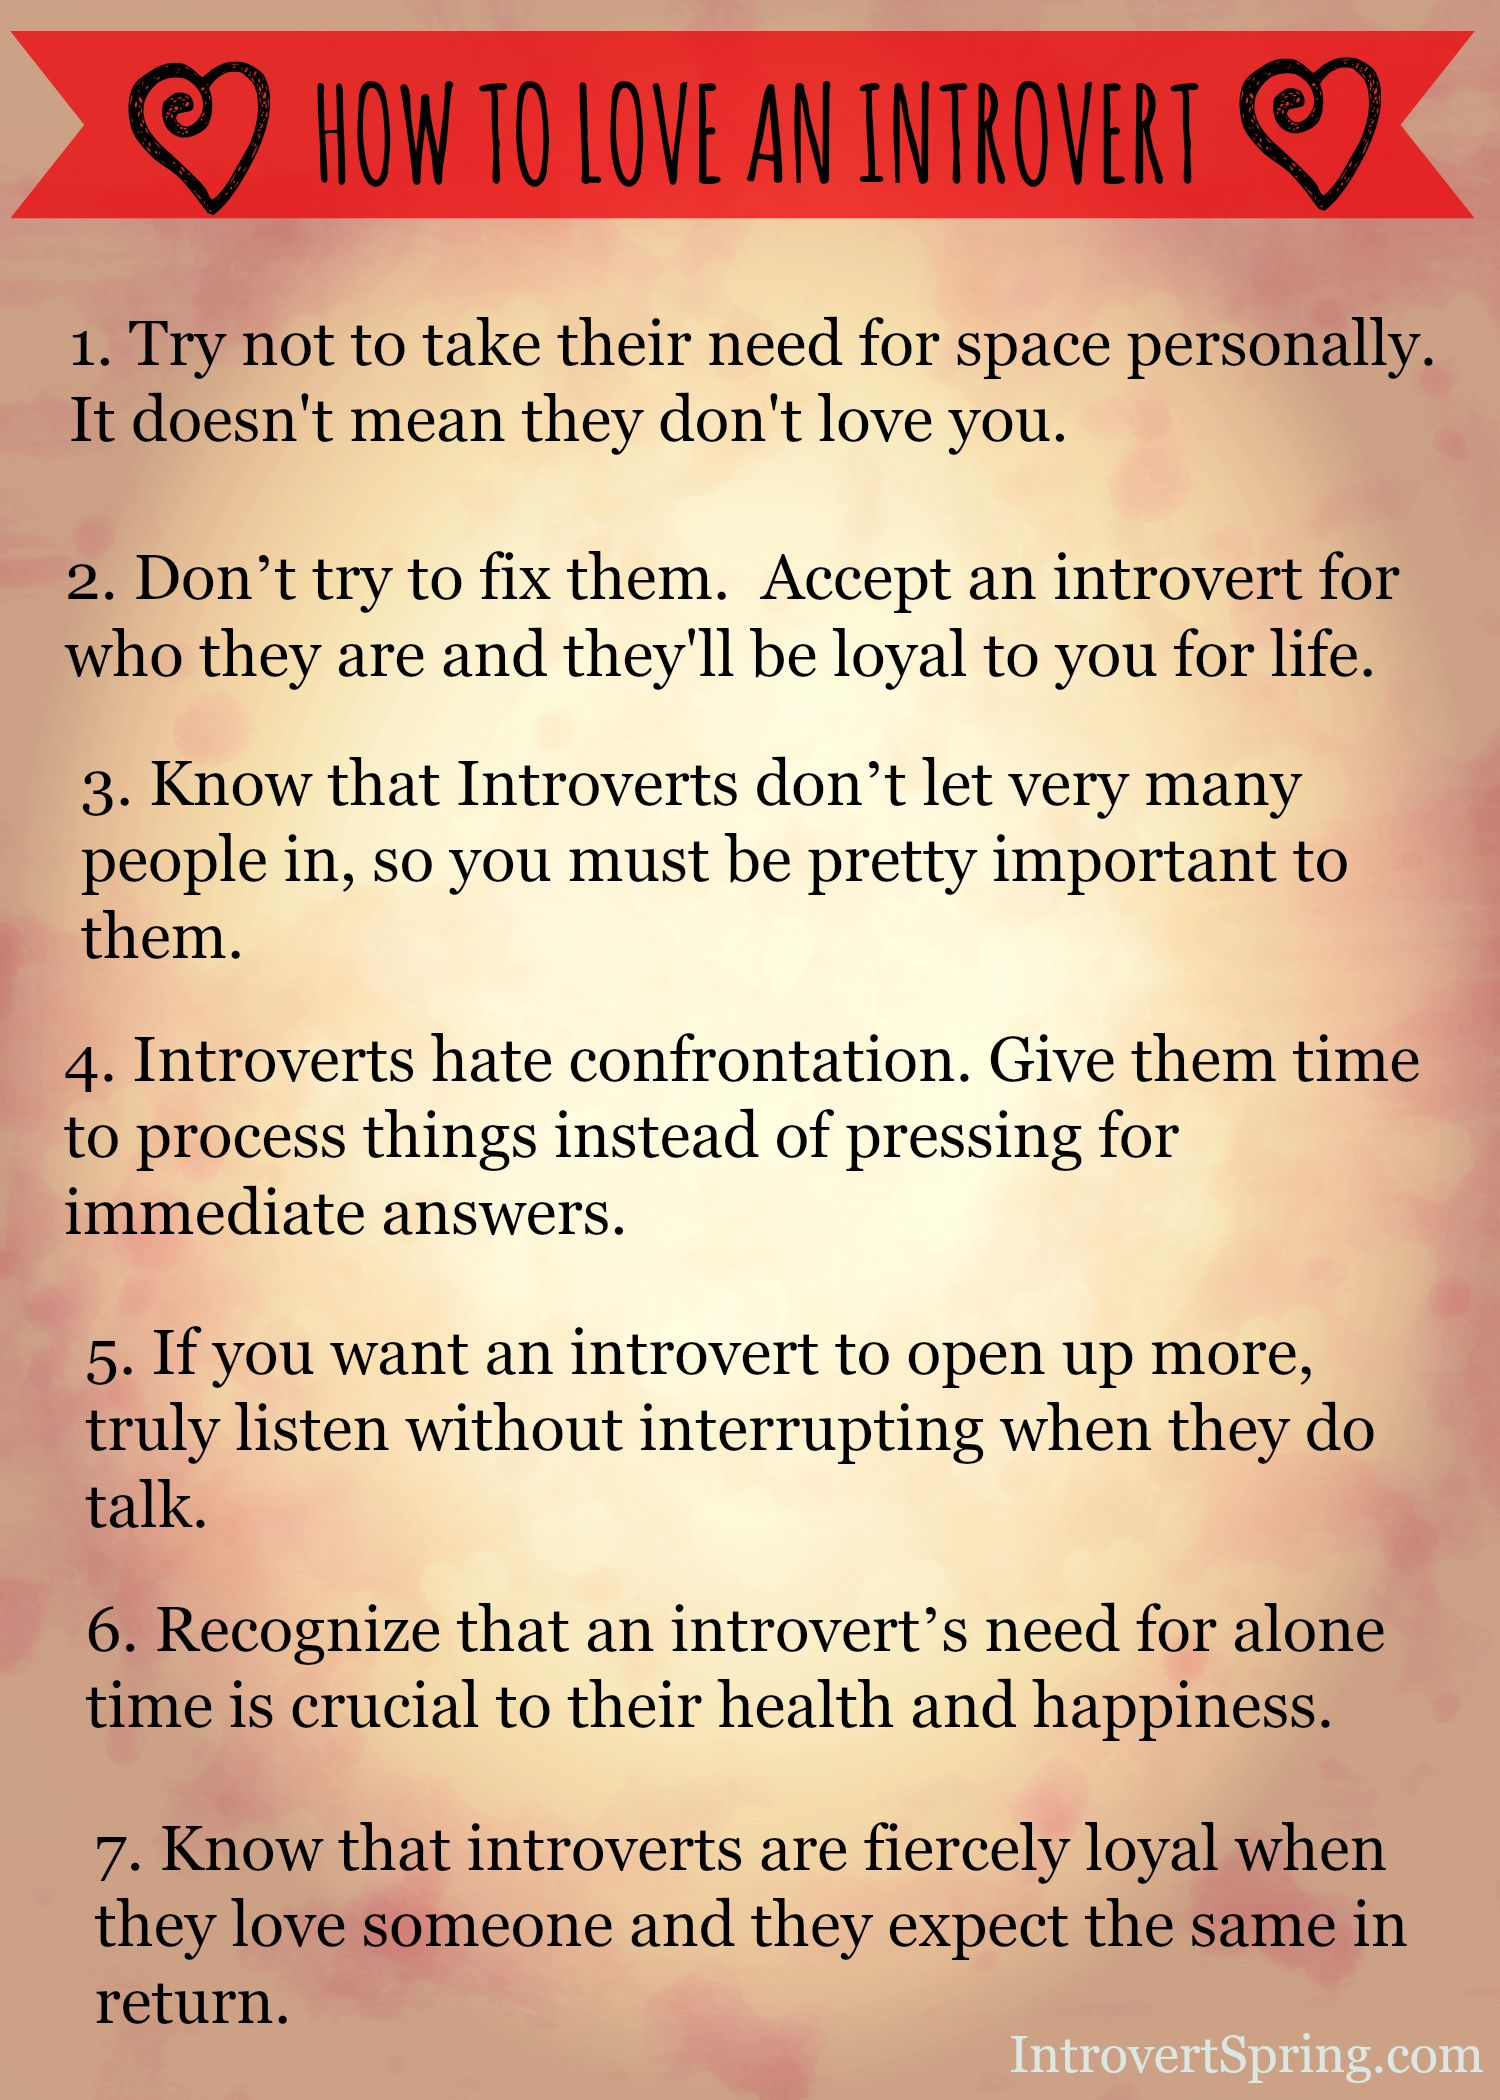 best images about introvert being alone  17 best images about introvert being alone 21 things and susan cain